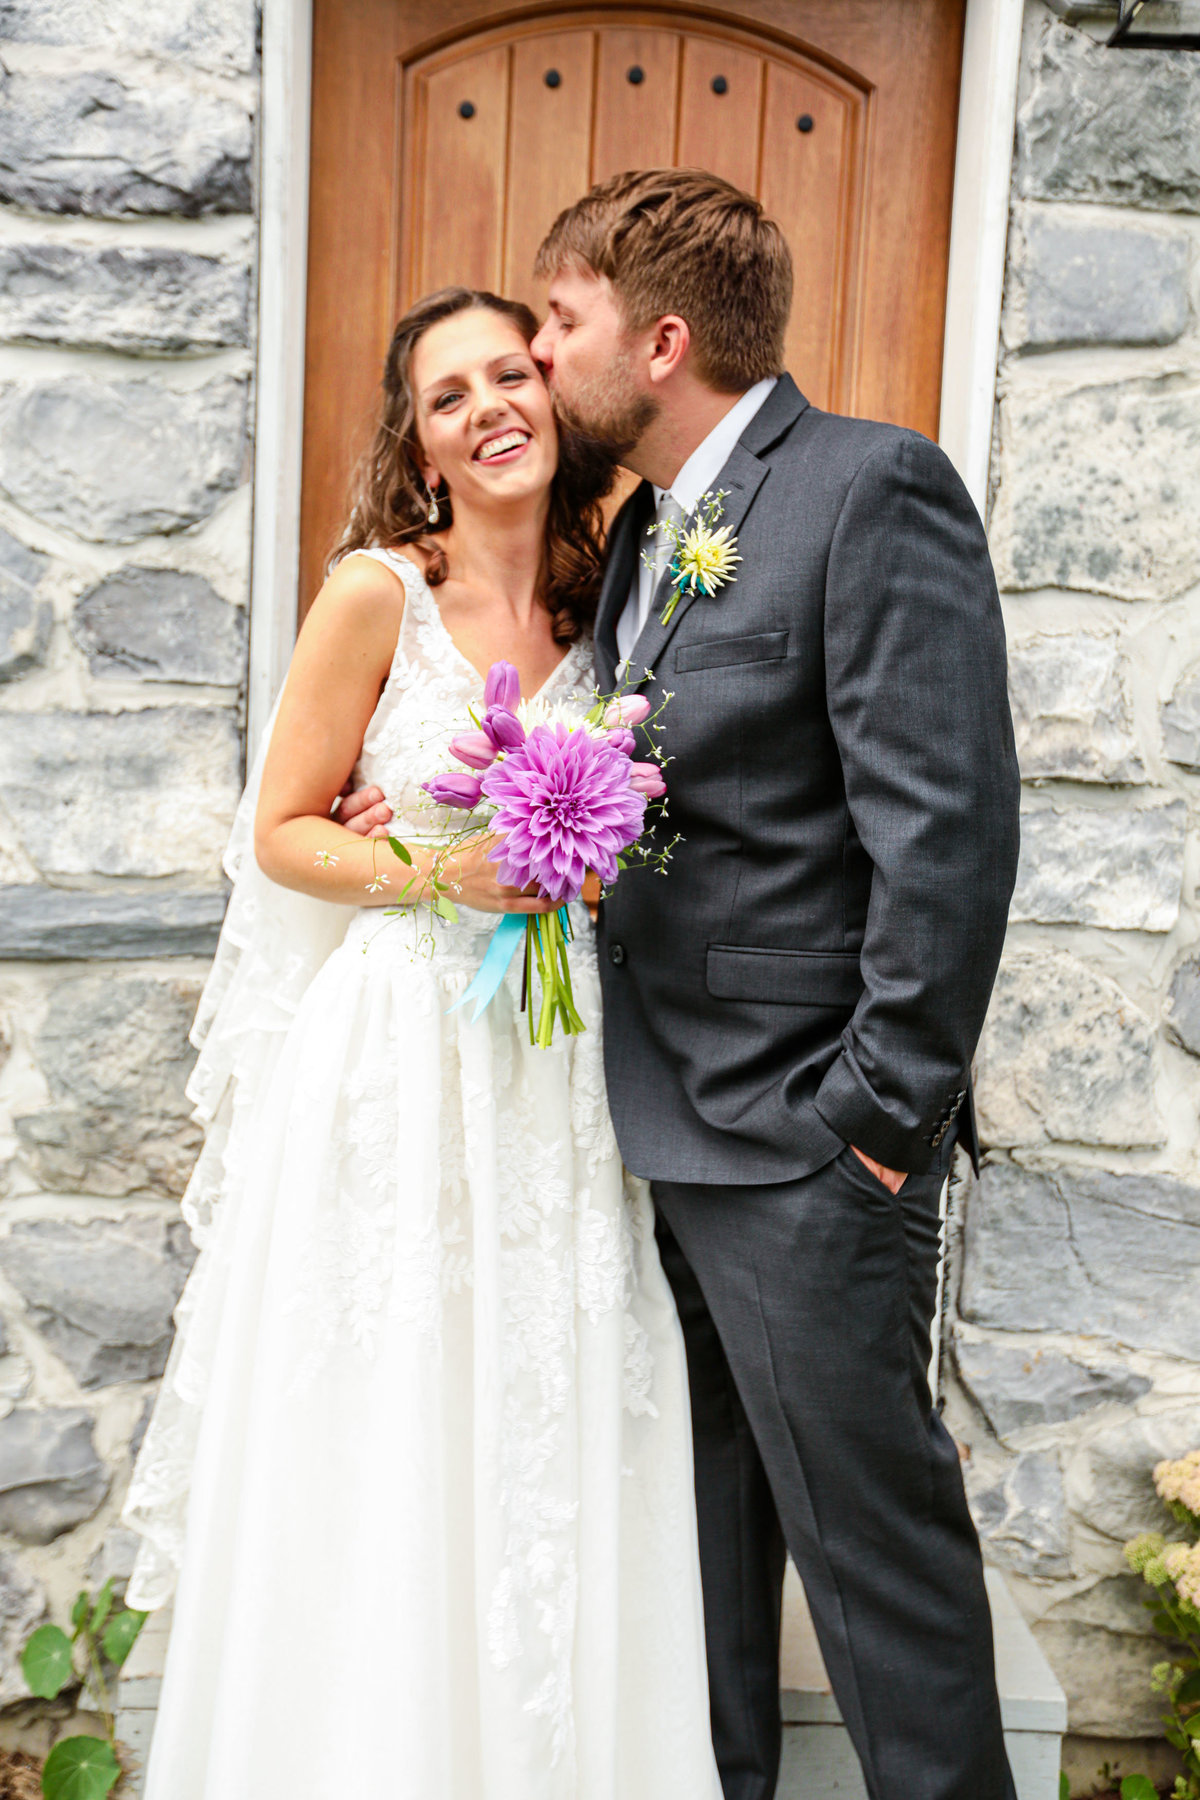 Hall-Potvin Photography Vermont Wedding Photographer Formals-5